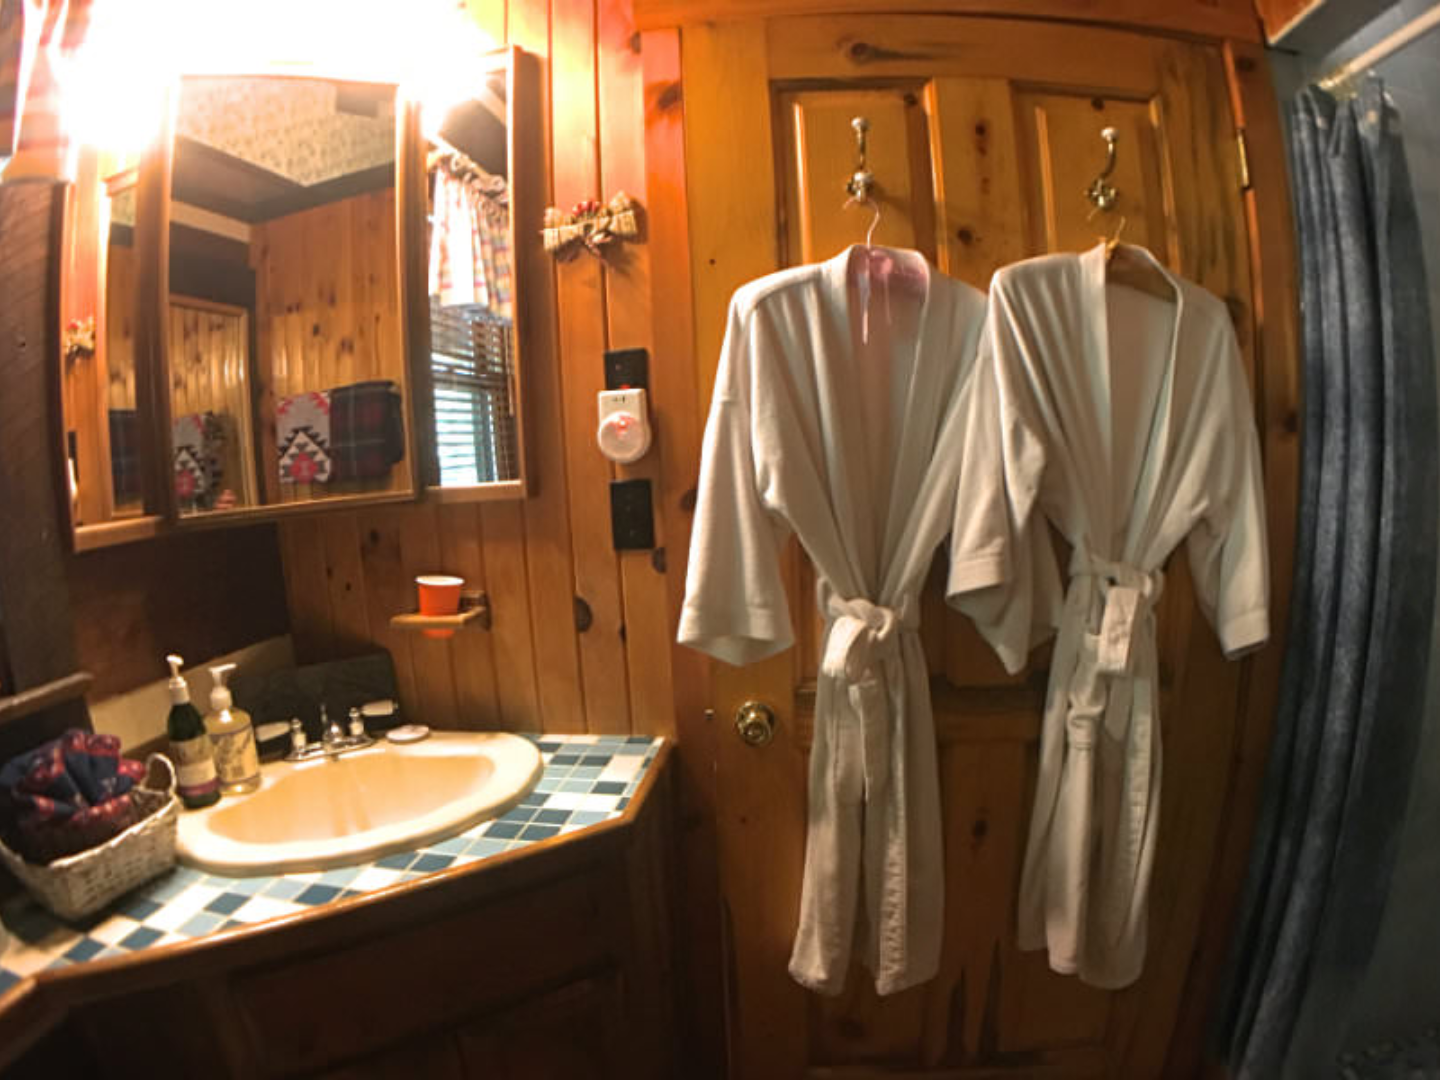 A person standing in front of a mirror posing for the camera at Creekwalk Inn and Cabins.